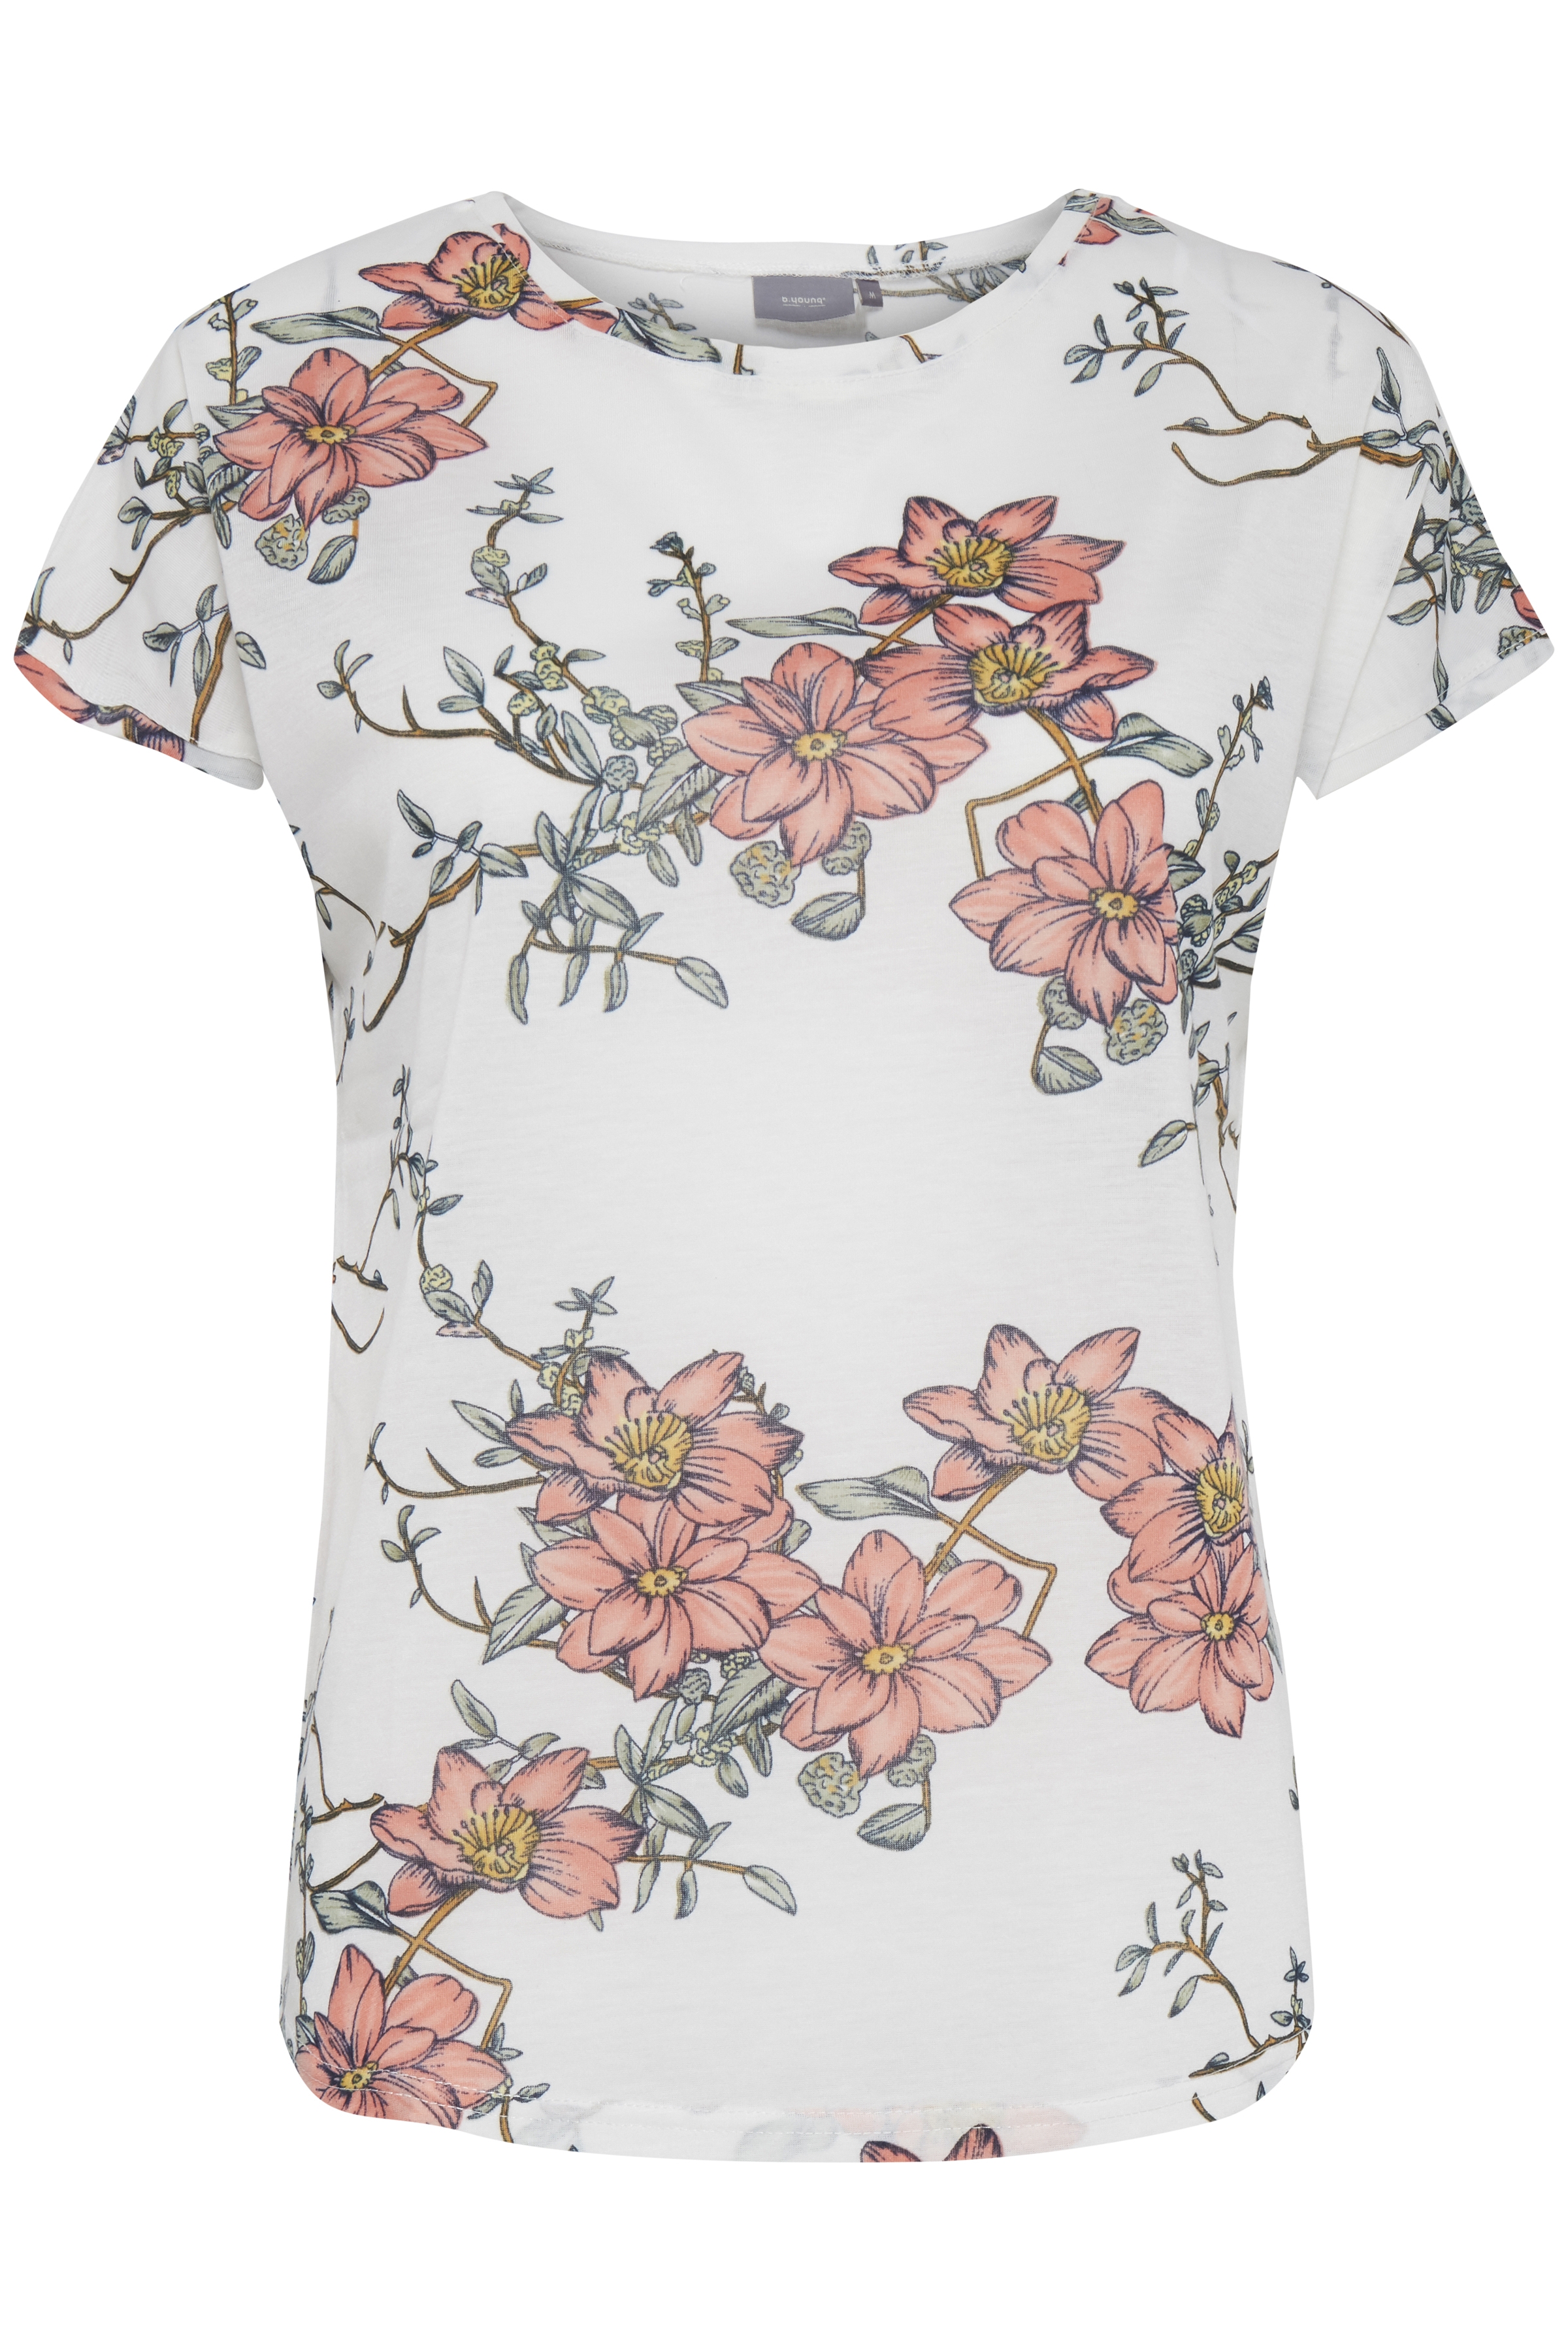 OFF WHITE COMBI 2 T-shirt fra b.young – Køb OFF WHITE COMBI 2 T-shirt fra str. XS-XL her